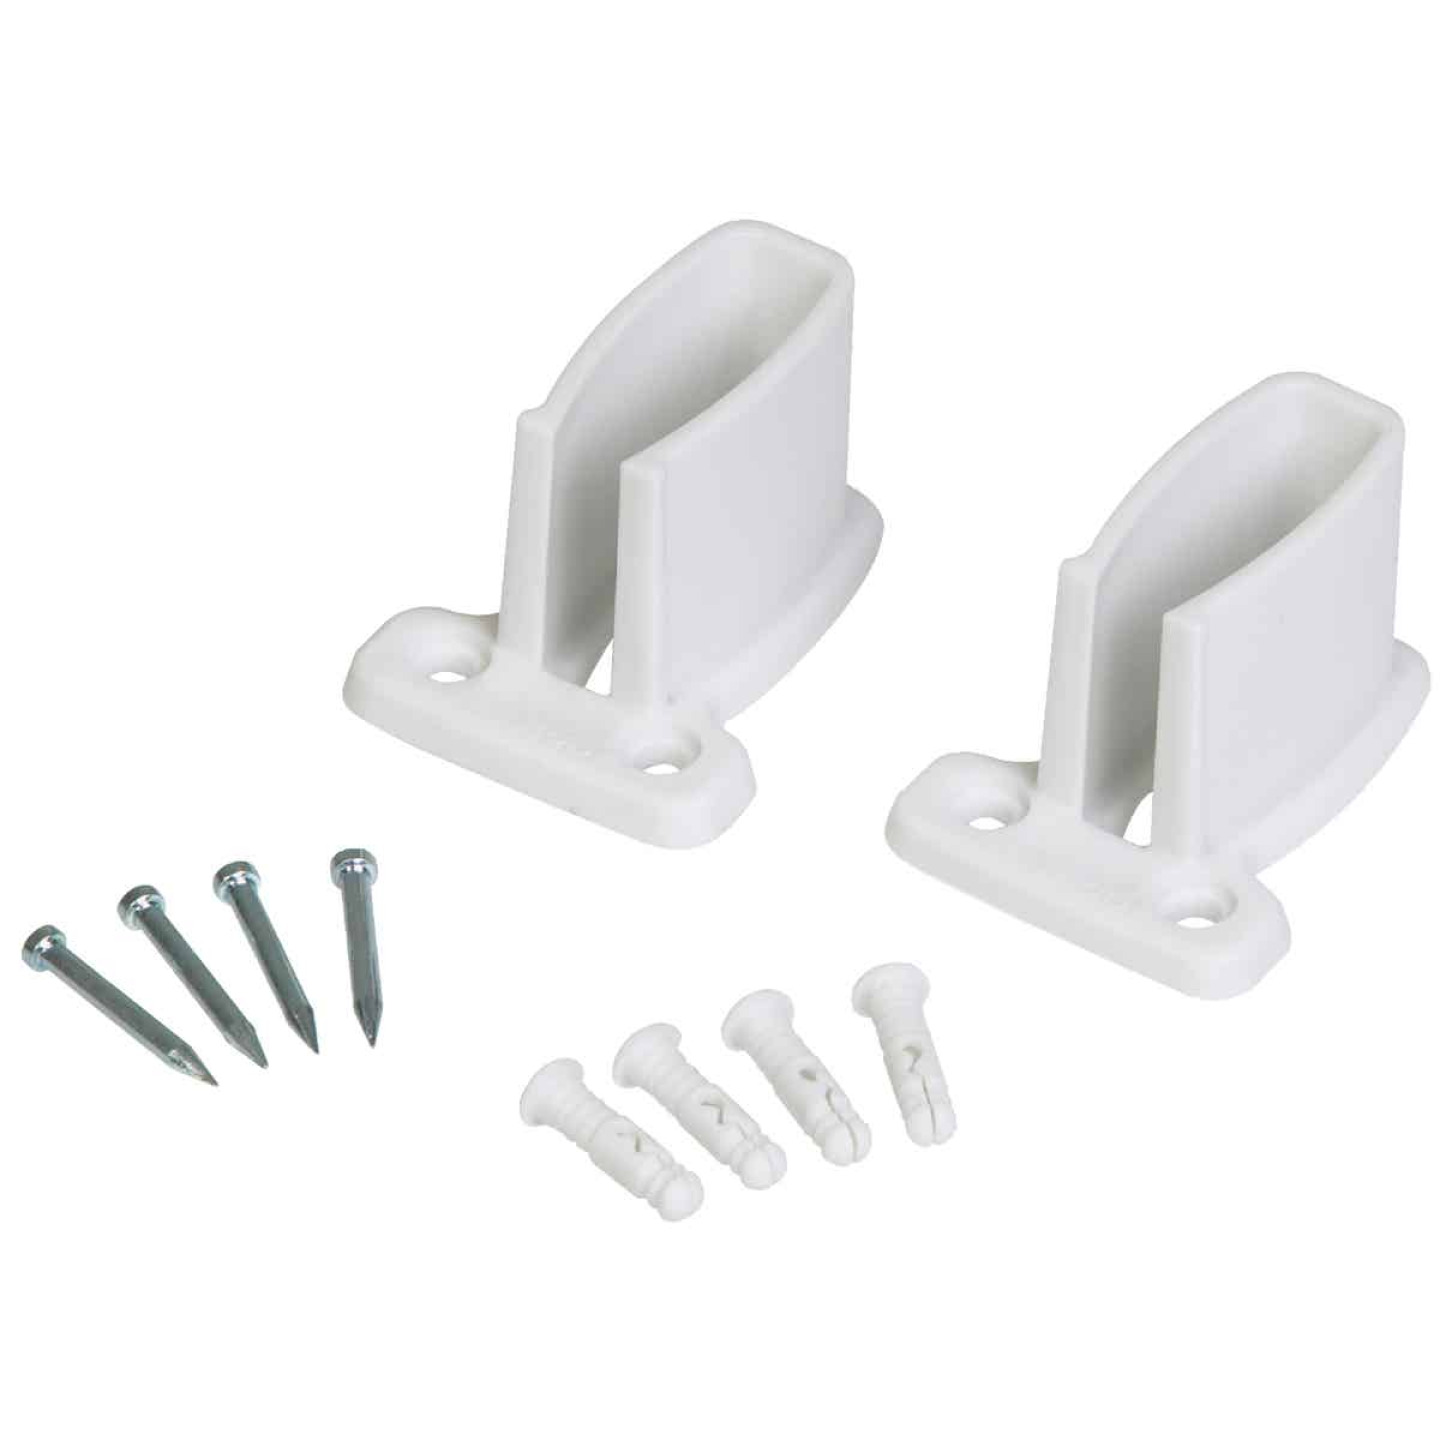 Closetmaid TotalSlide White Wire Shelf End Bracket (4-Count) Image 1